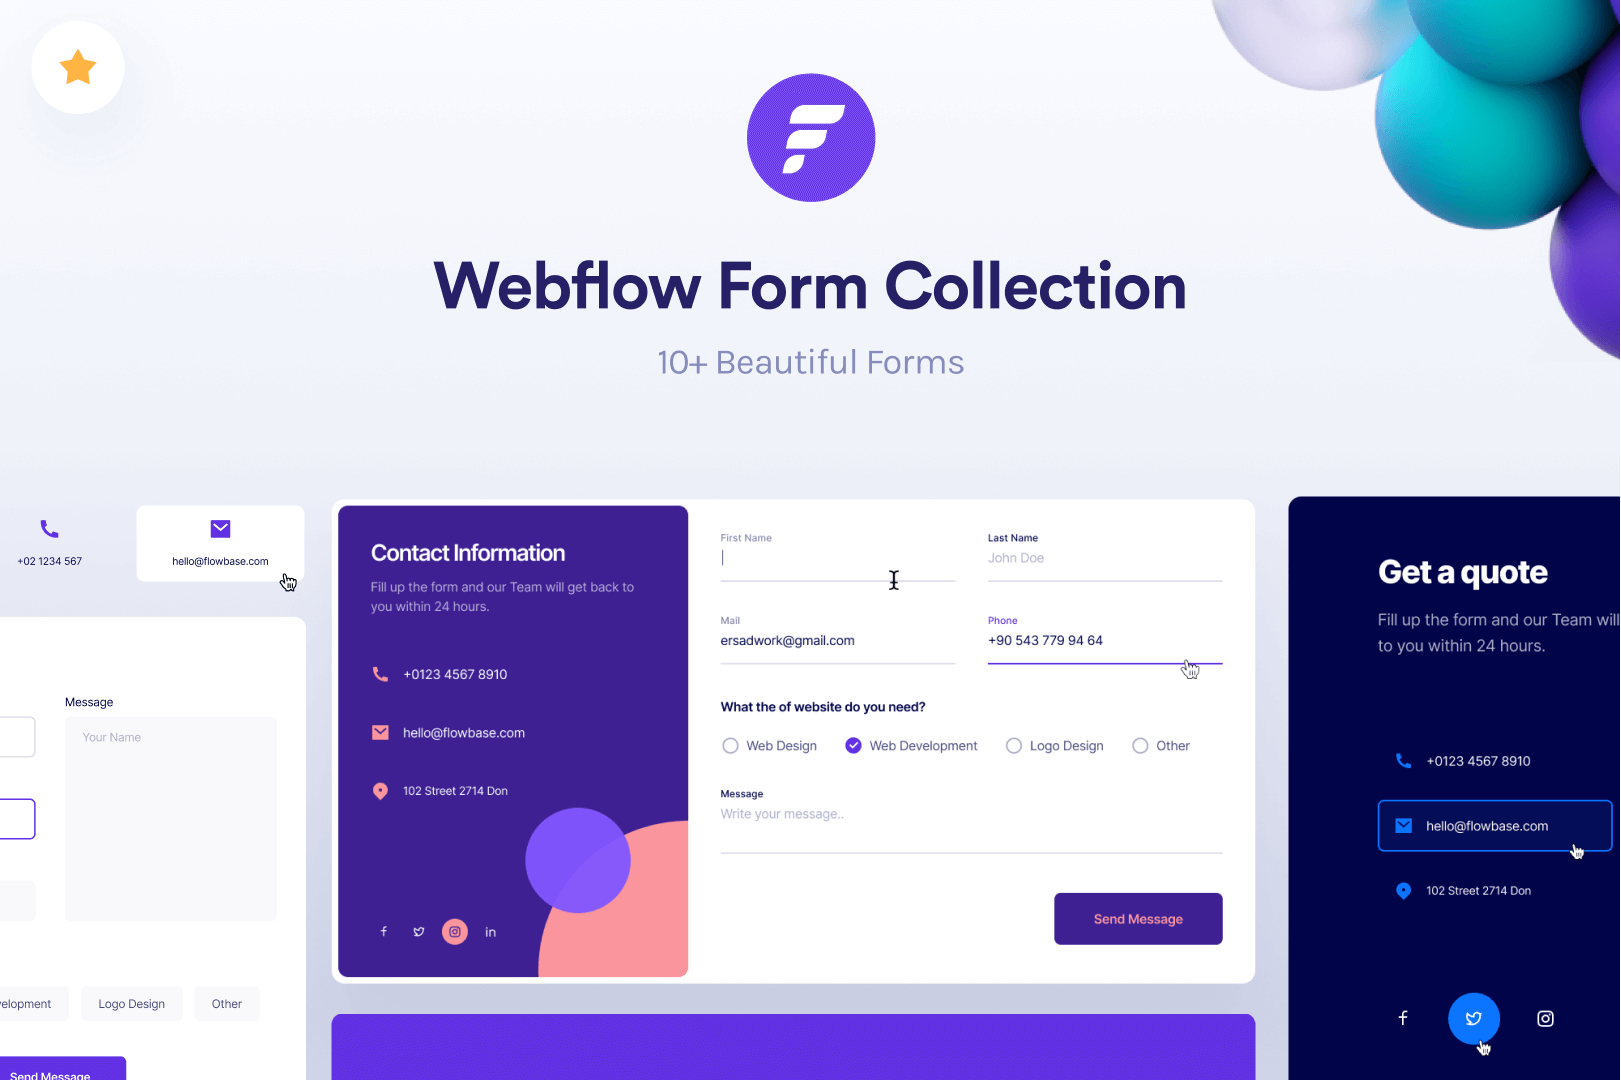 Webflow: Form Collection